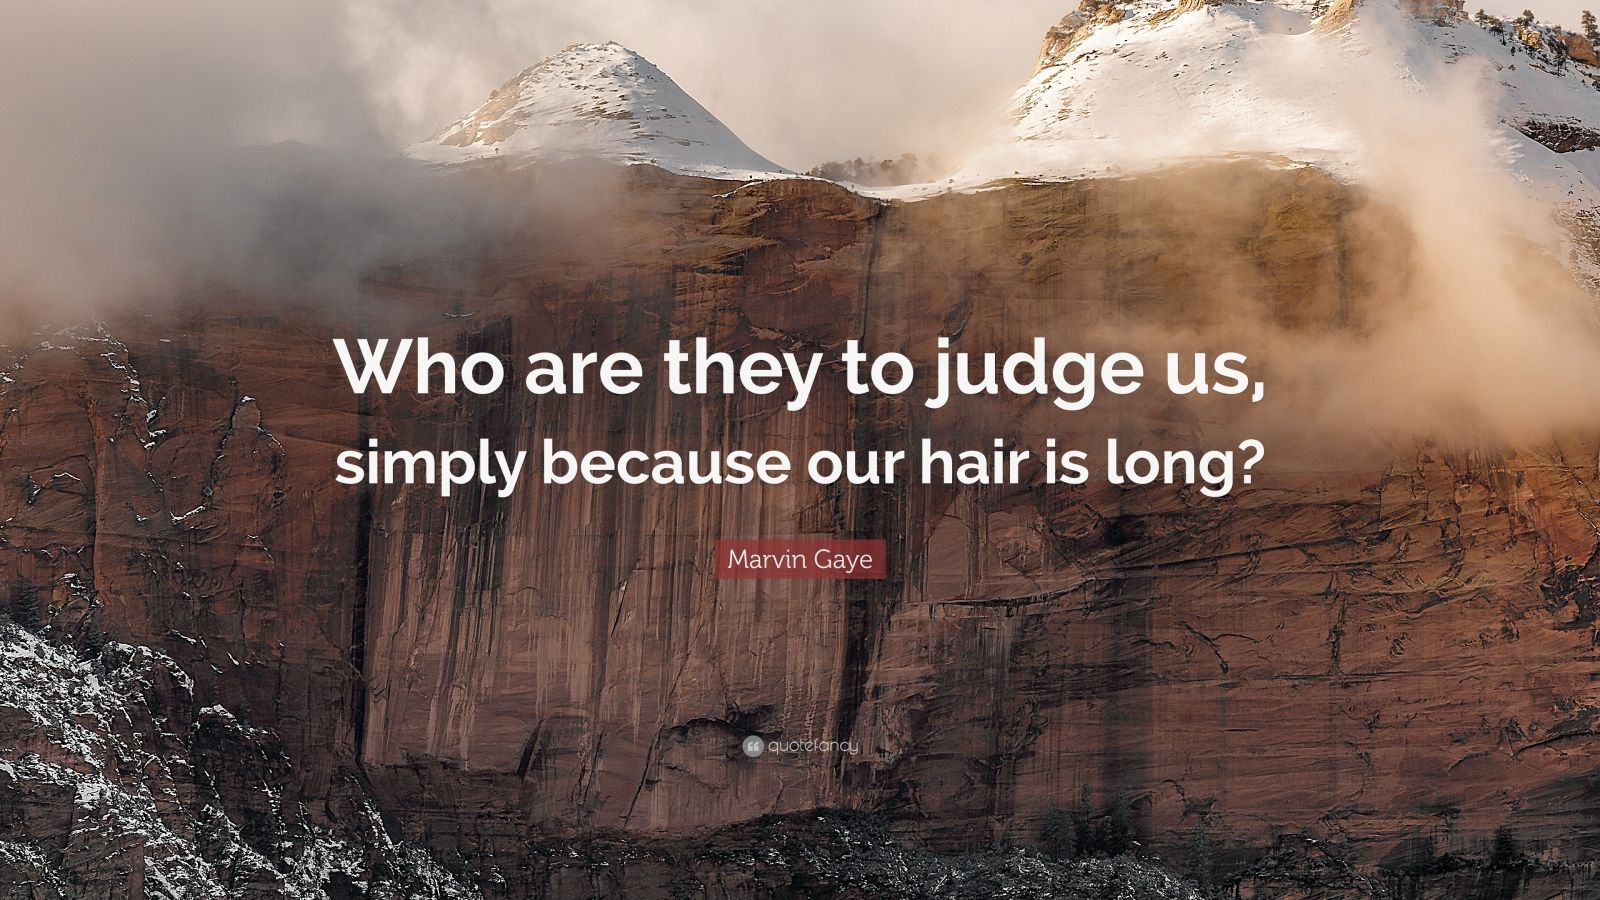 """Marvin Gaye Quote: """"Who are they to judge us, simply because our hair is long?"""""""